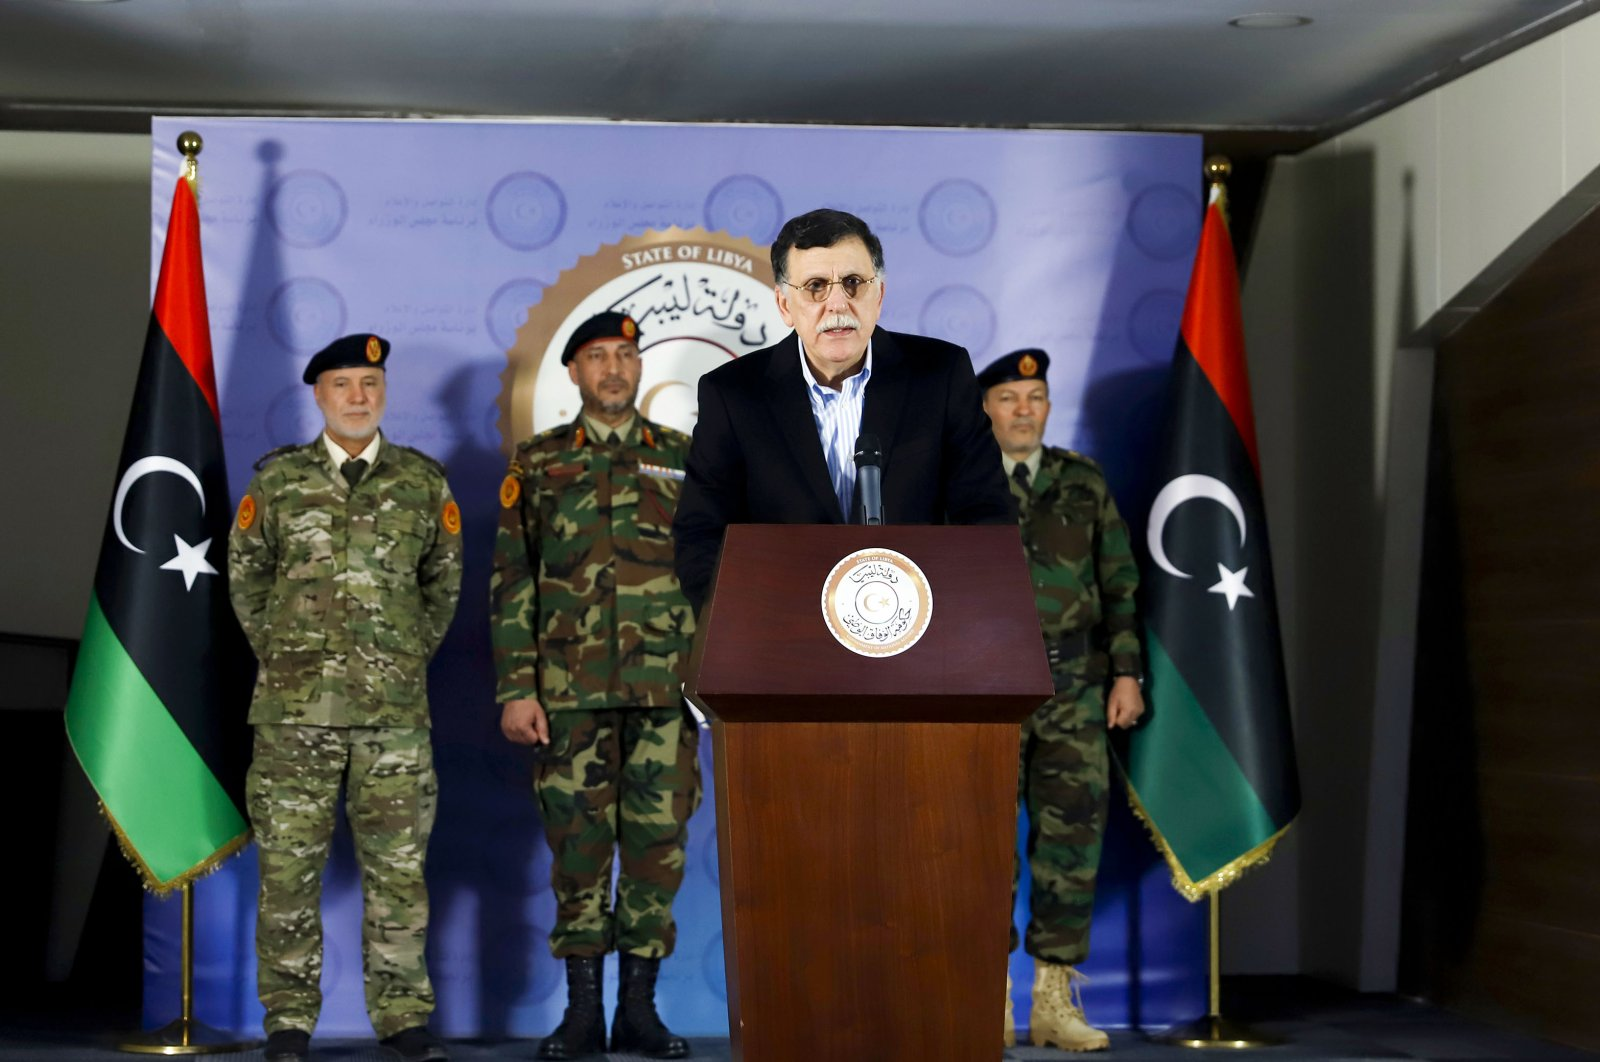 Fayez al-Sarraj, Prime Minister of Libya's U.N.-recognized Government of National Accord (GNA), speaks during a press conference in the capital Tripoli on April 13, 2020. (AFP Photo)